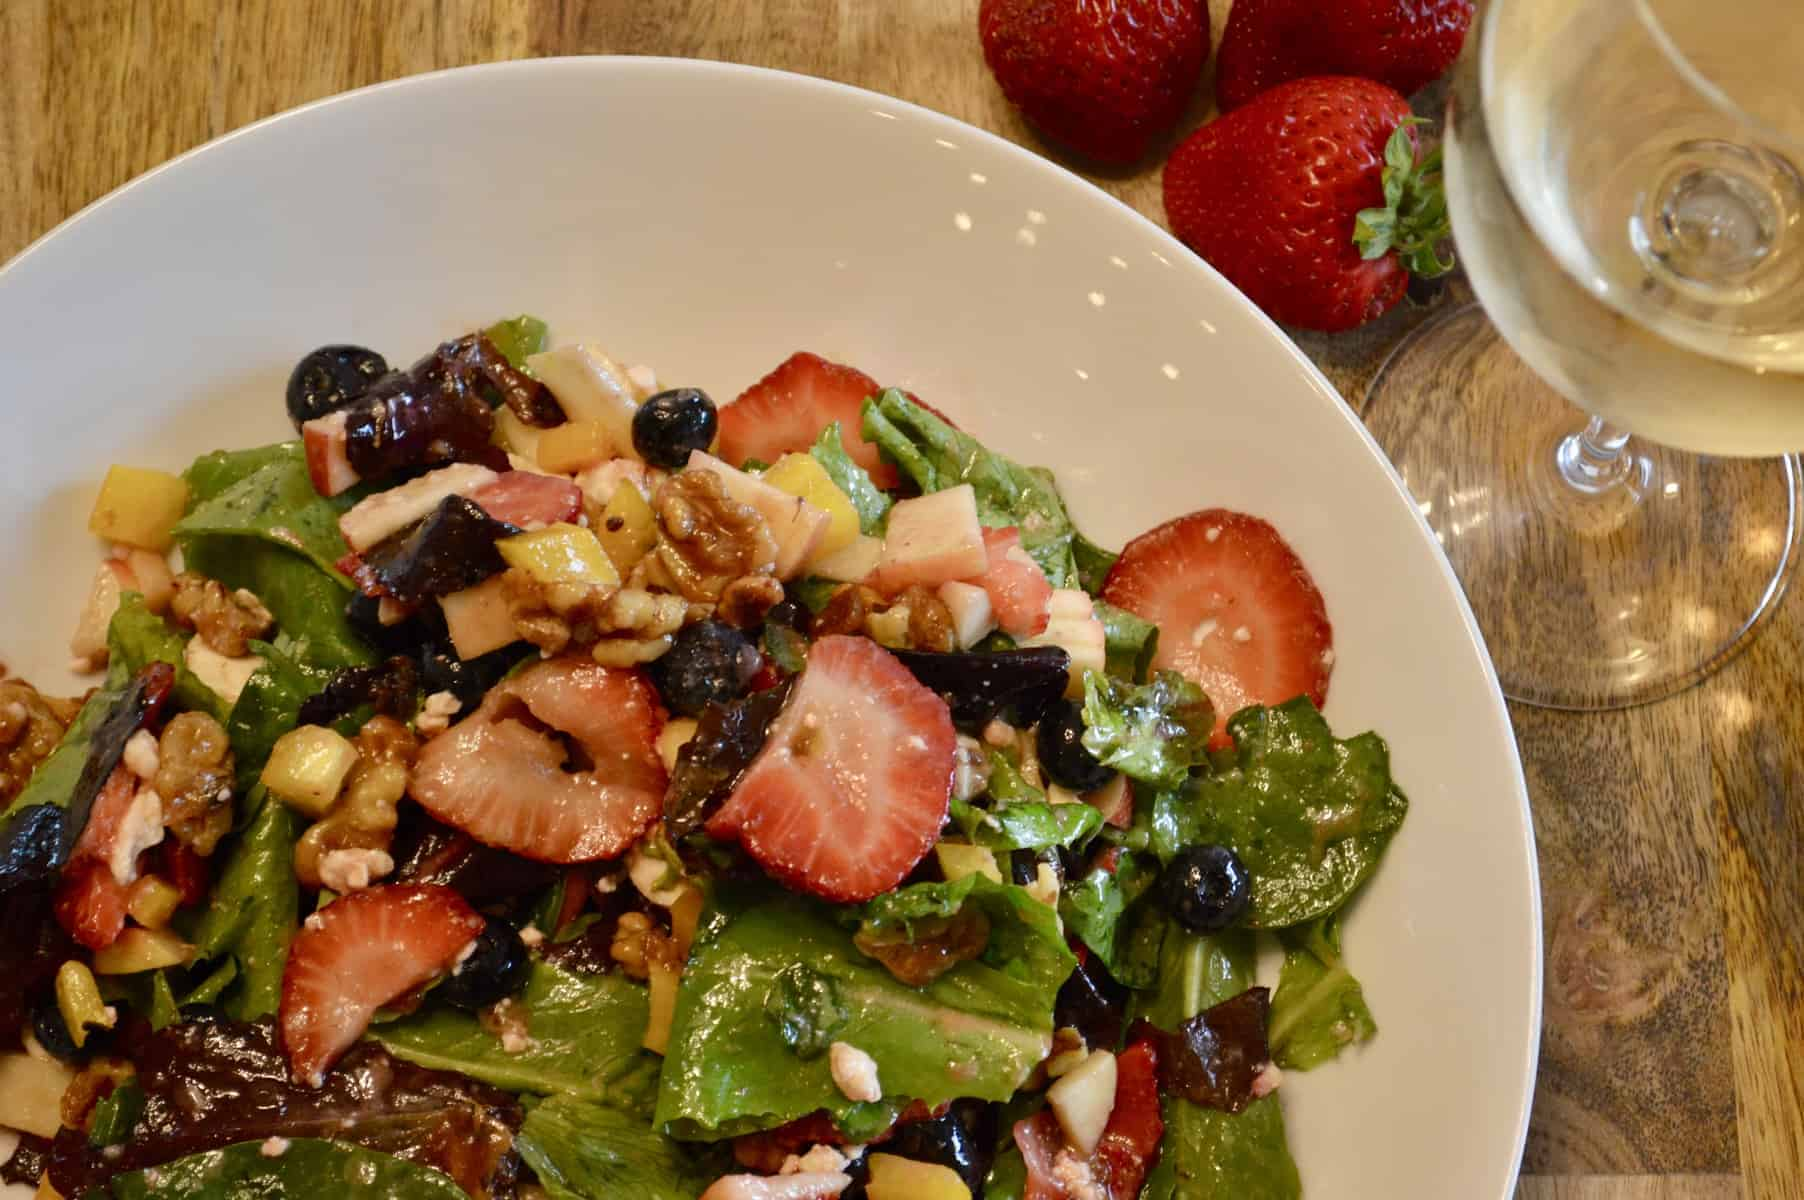 berry salad with candied walnuts on a wood table with a wine glass and strawberries